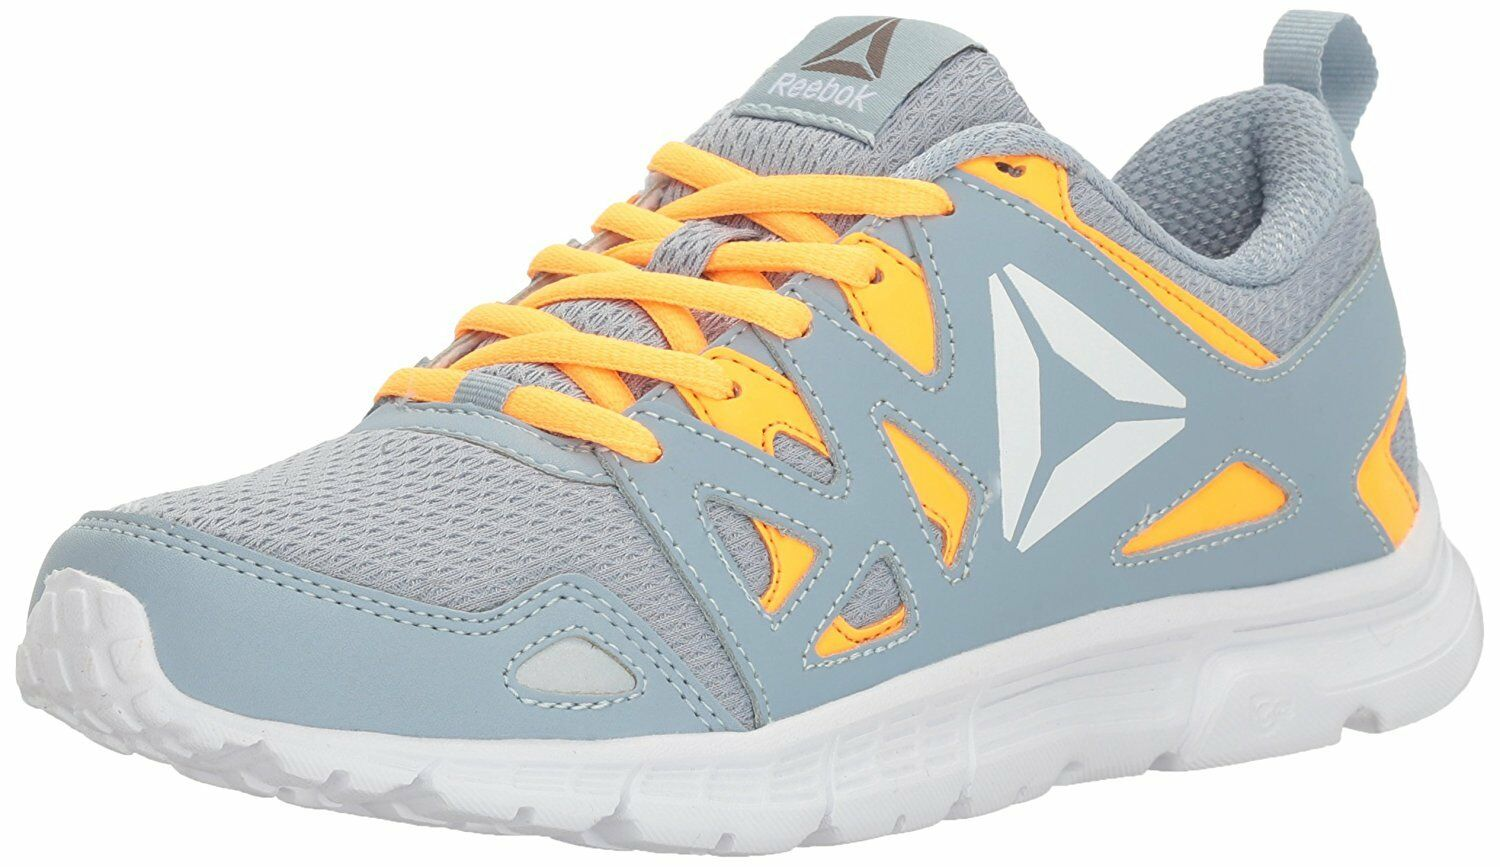 Reebok Run Supreme 3.0 MT Women's Running shoes Sneakers Gable Grey Fire Spark